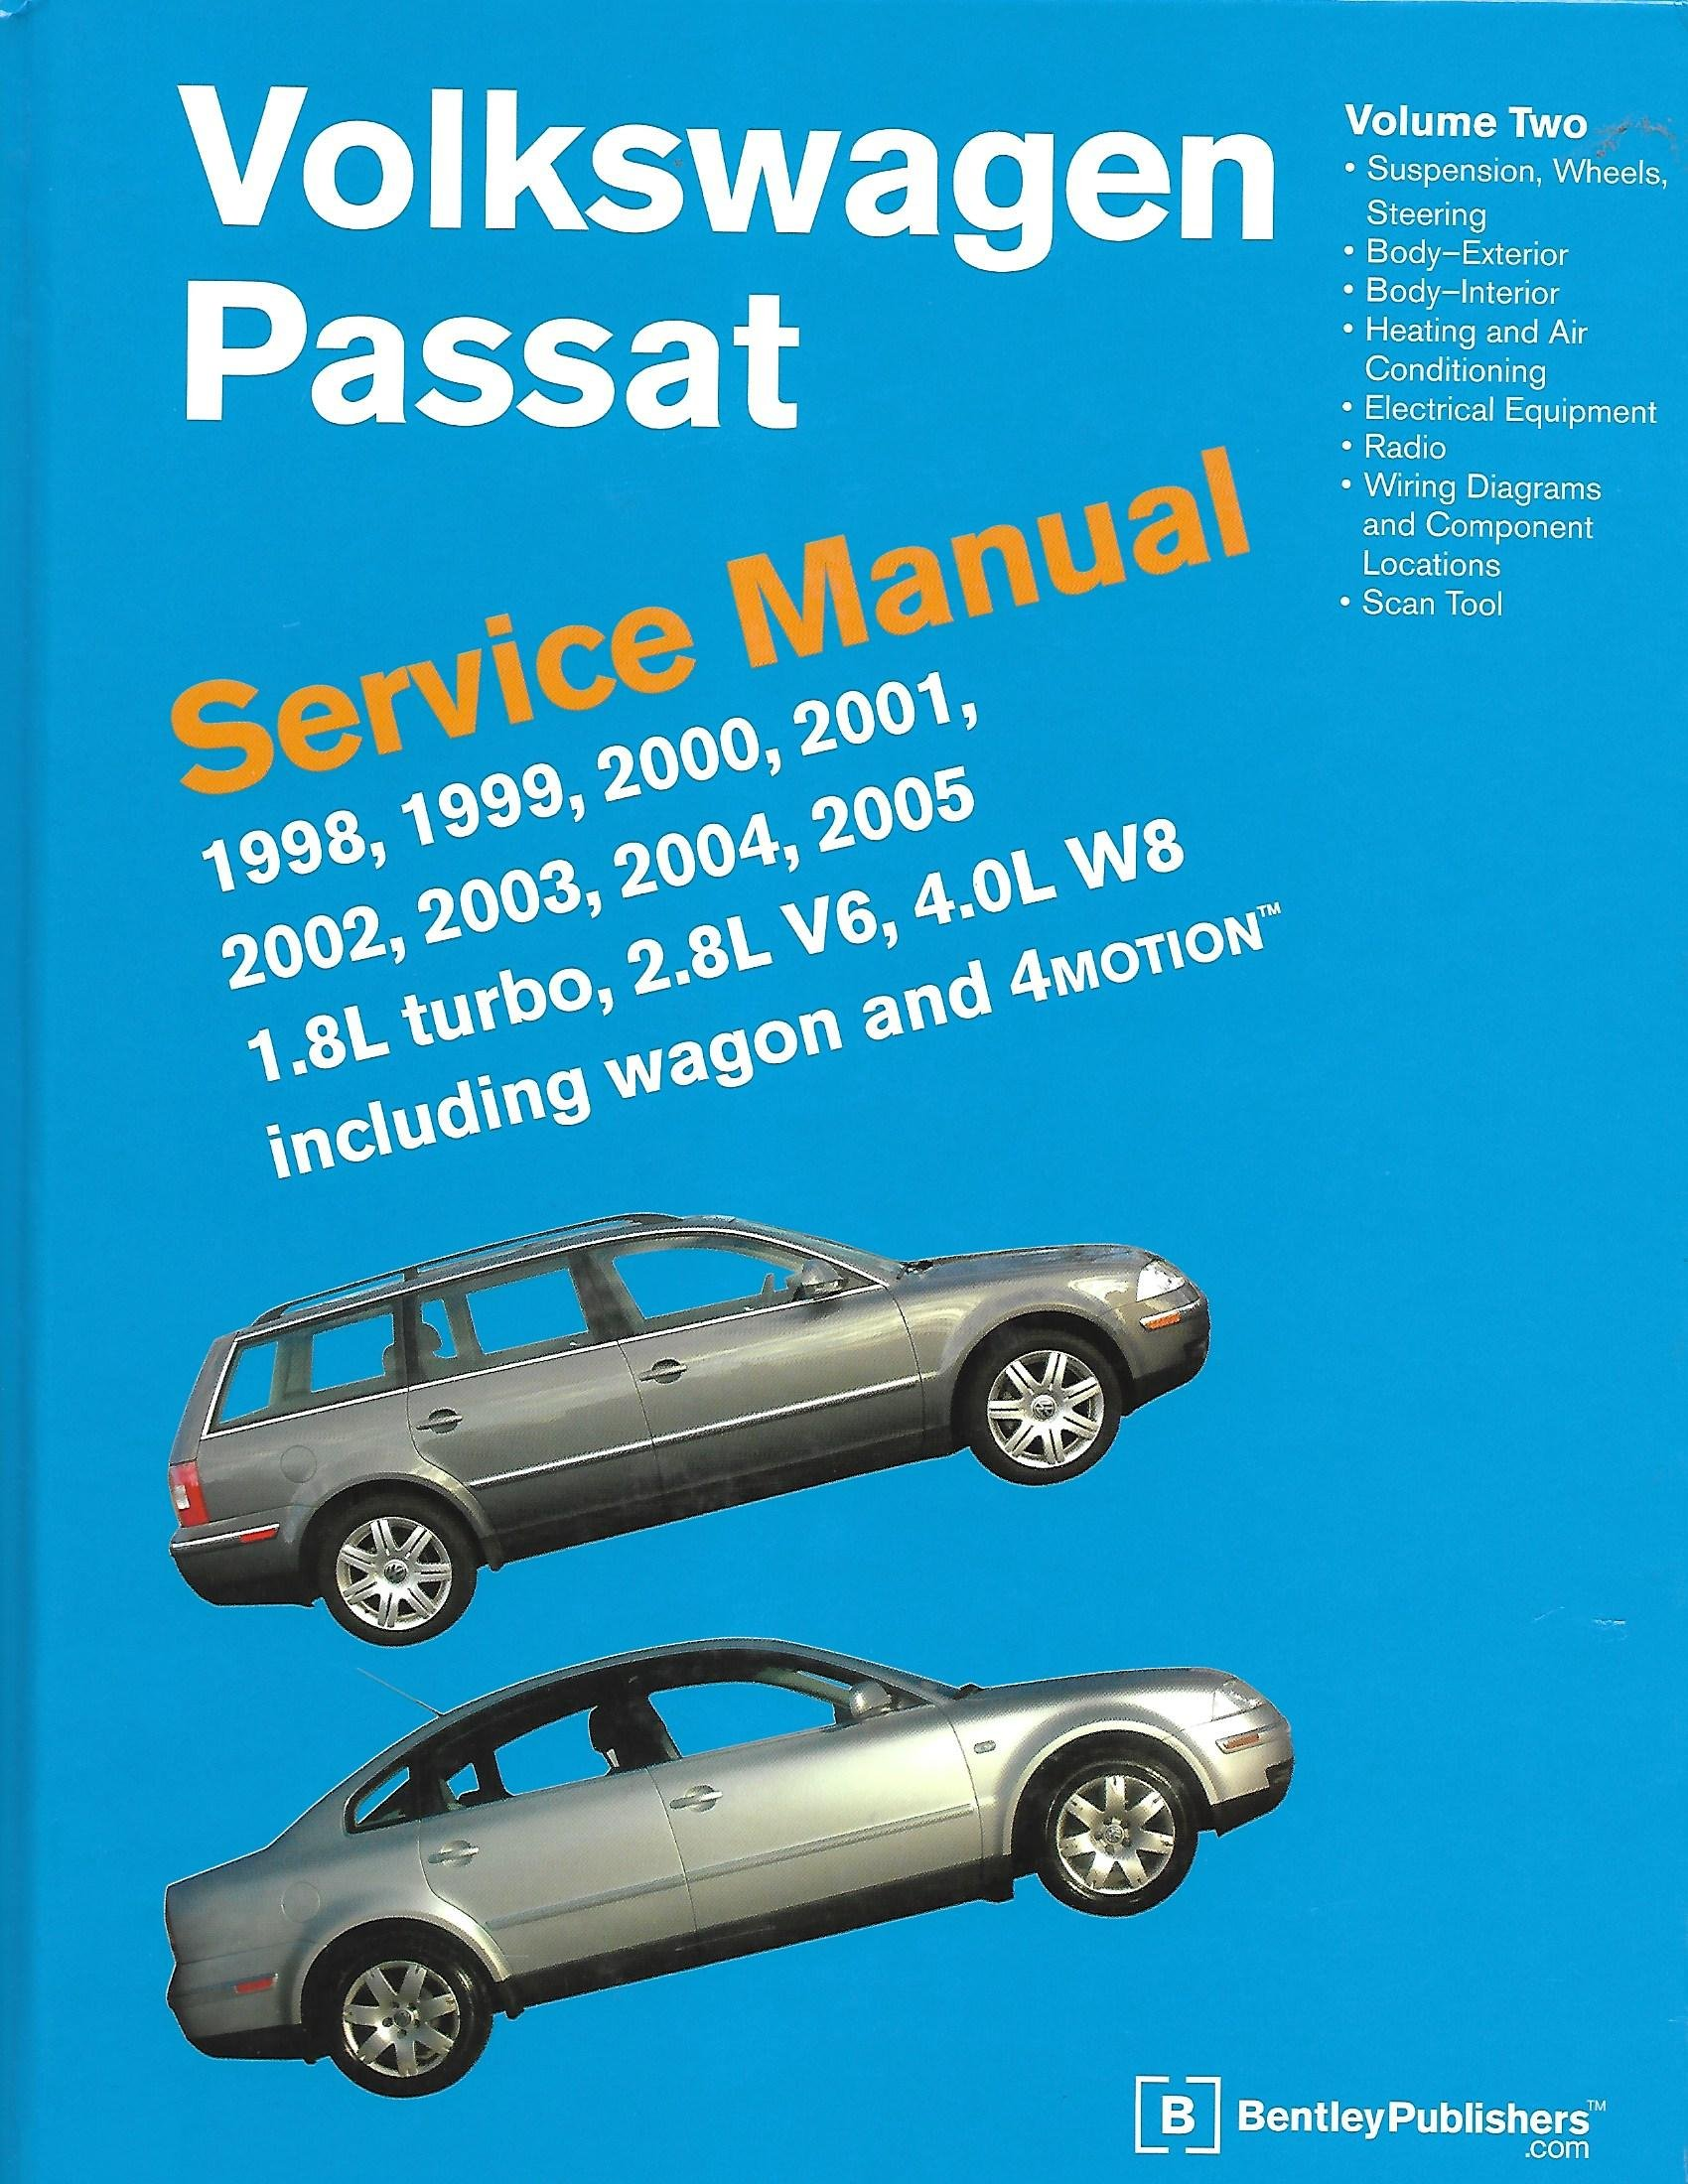 volkswagen passat- service manual: volume 2: 1998,1999, 2000, 2001, 2002,  2003, 2004, 2005 1 8 turbo, 2 8l v6, 4 0l w8 including wagon and 4motion  hardcover